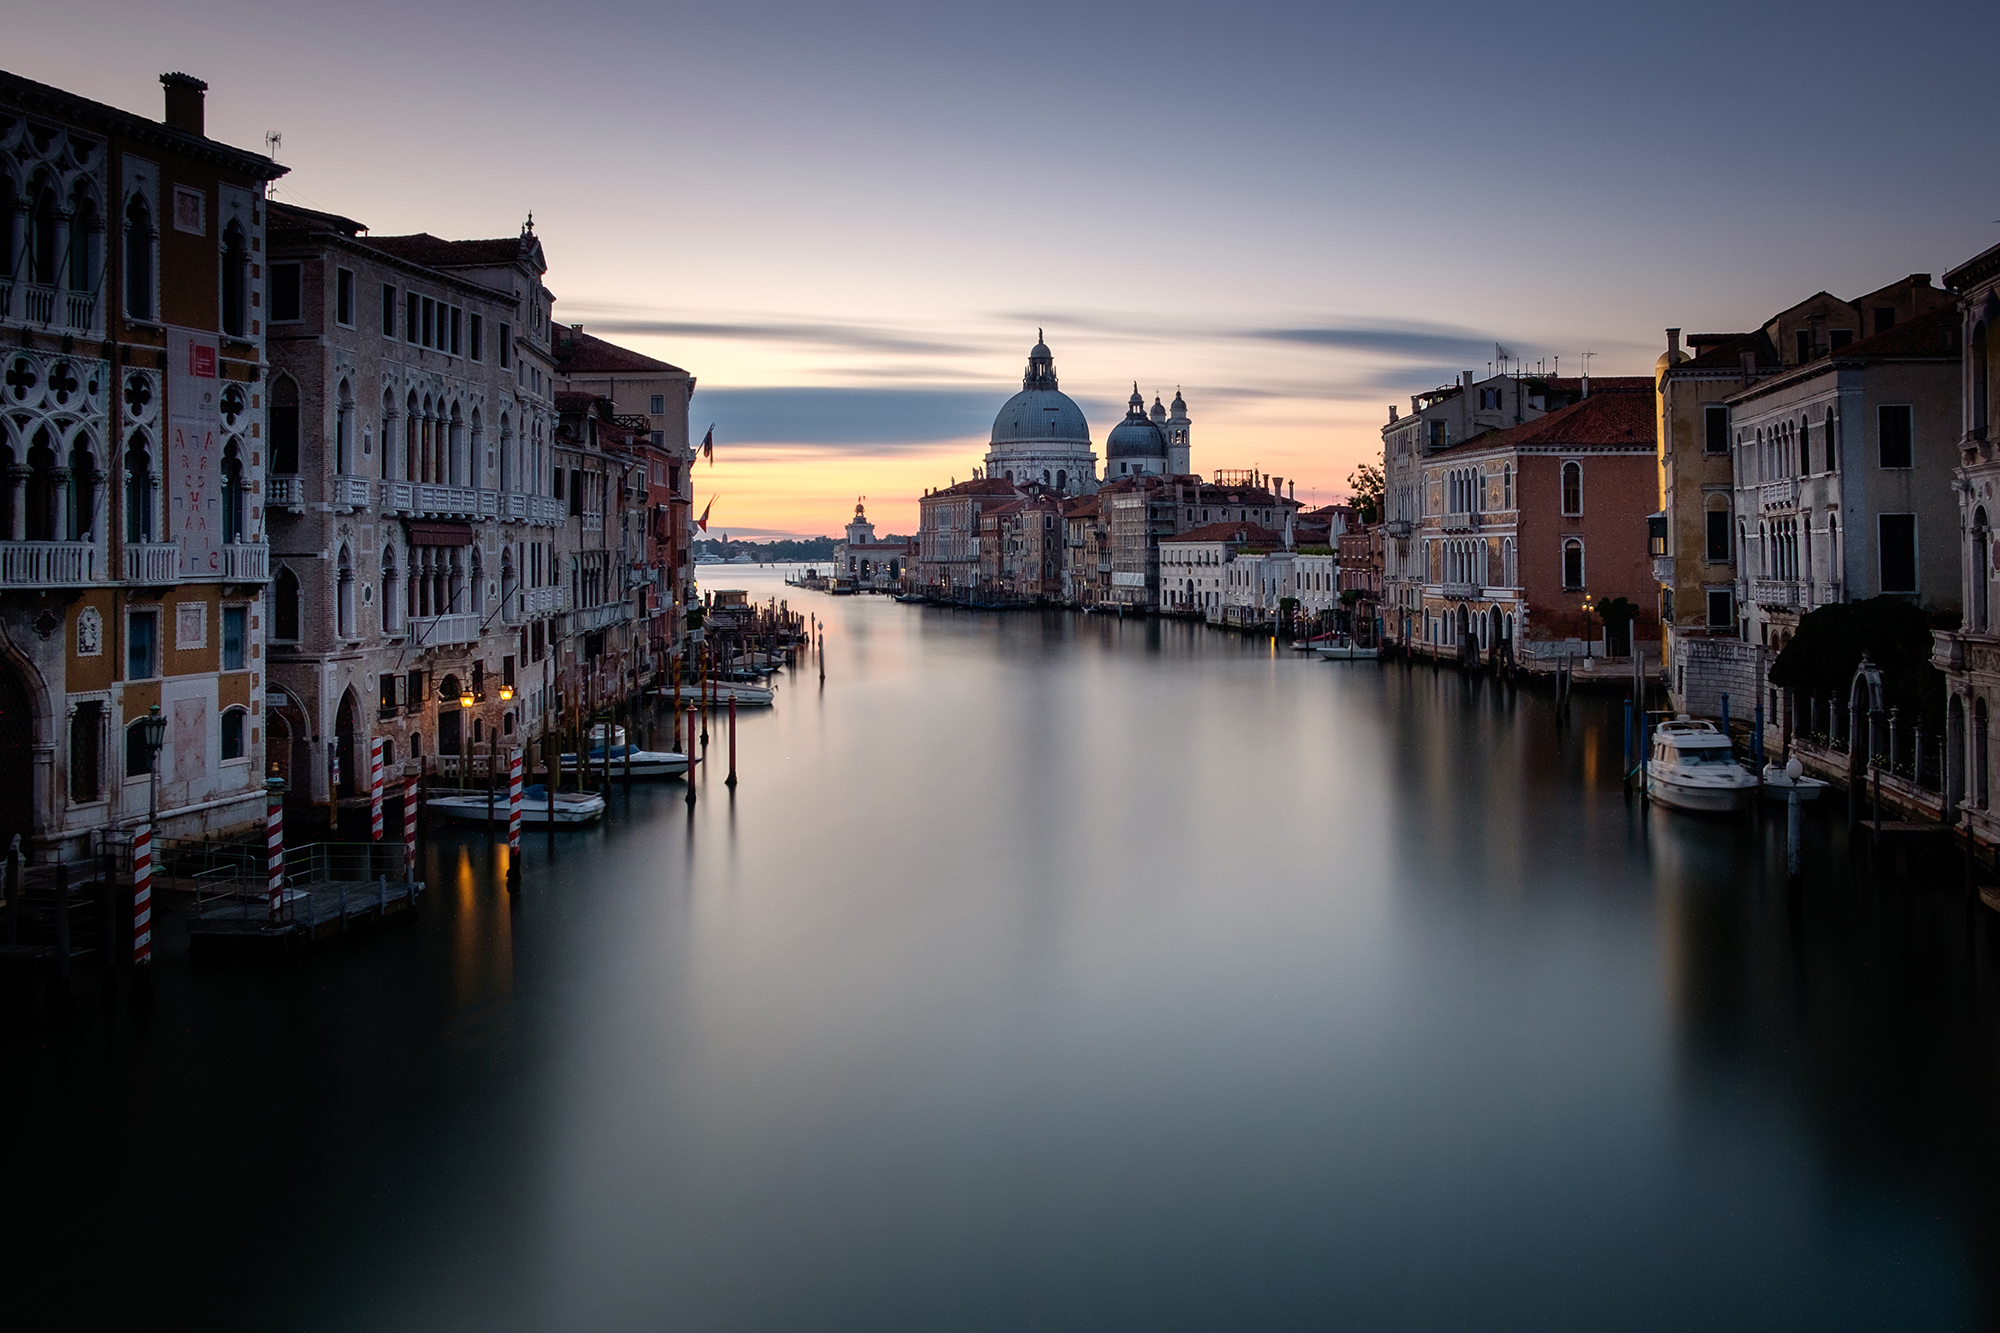 A weekend in Venice - A mini project to capture the essence of Venice